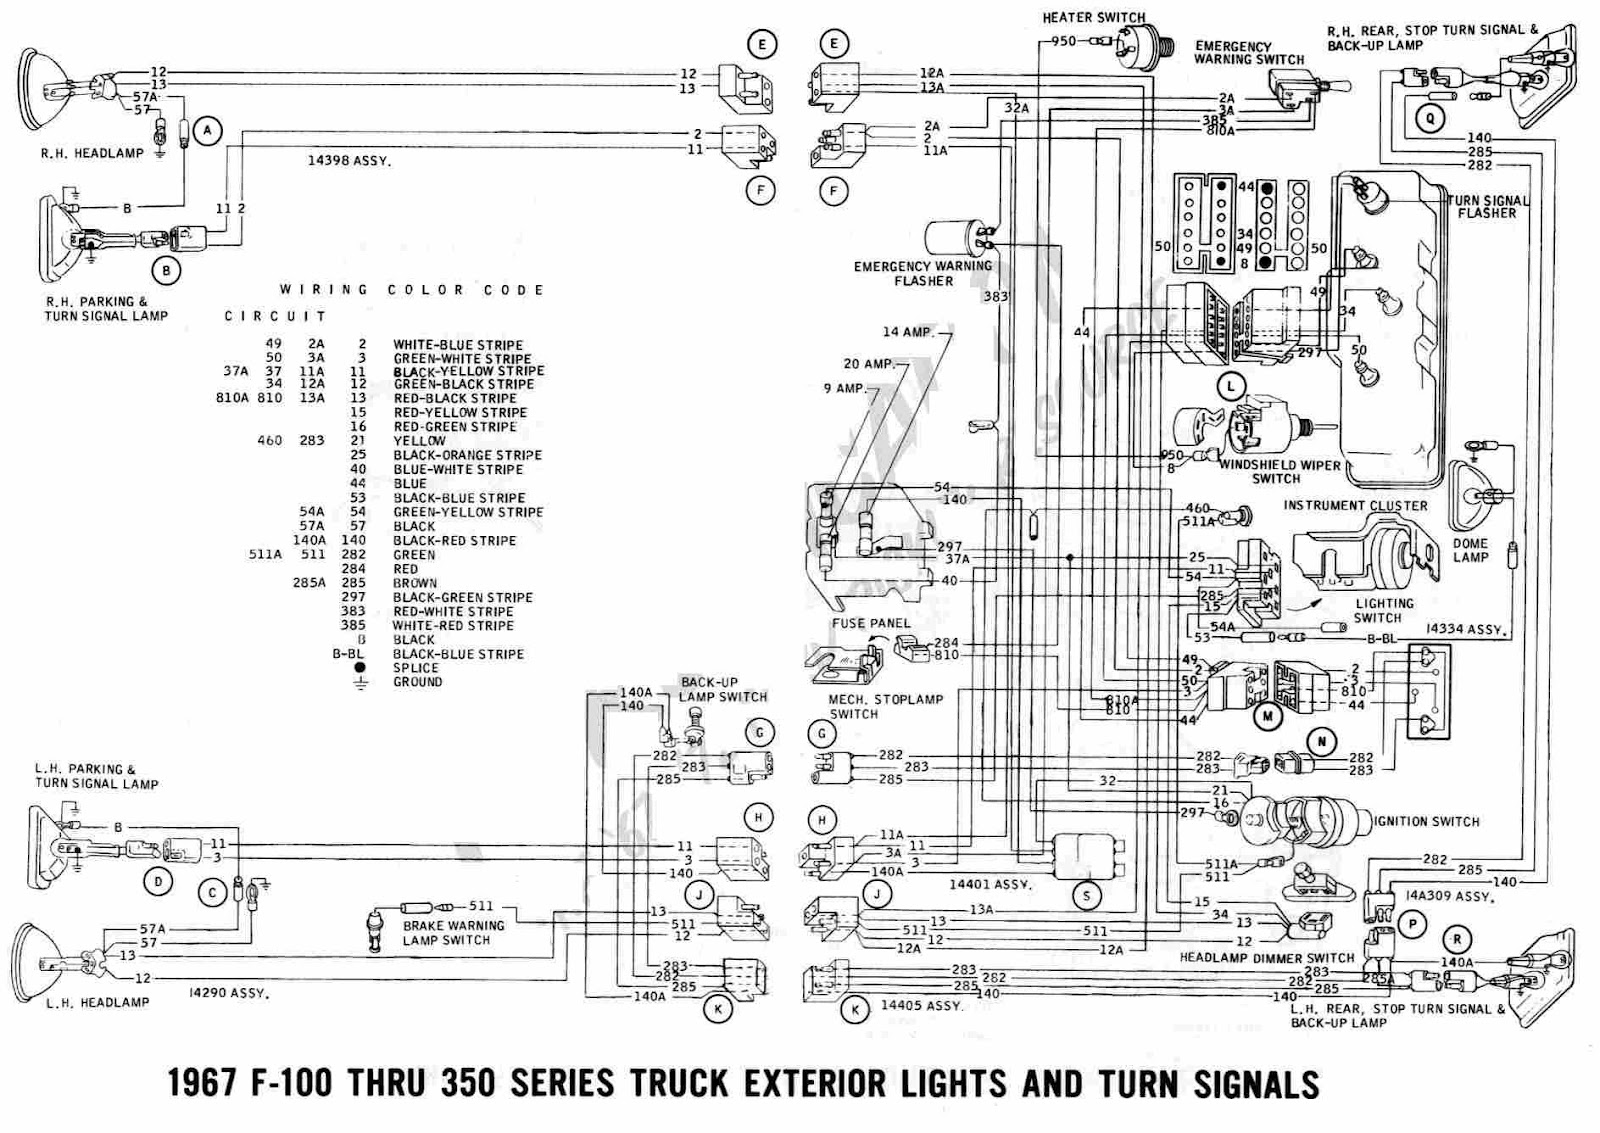 Electrical Wiring Diagram Of Ford F100 – Exterior Lights Wiring Diagram 1996 Ford